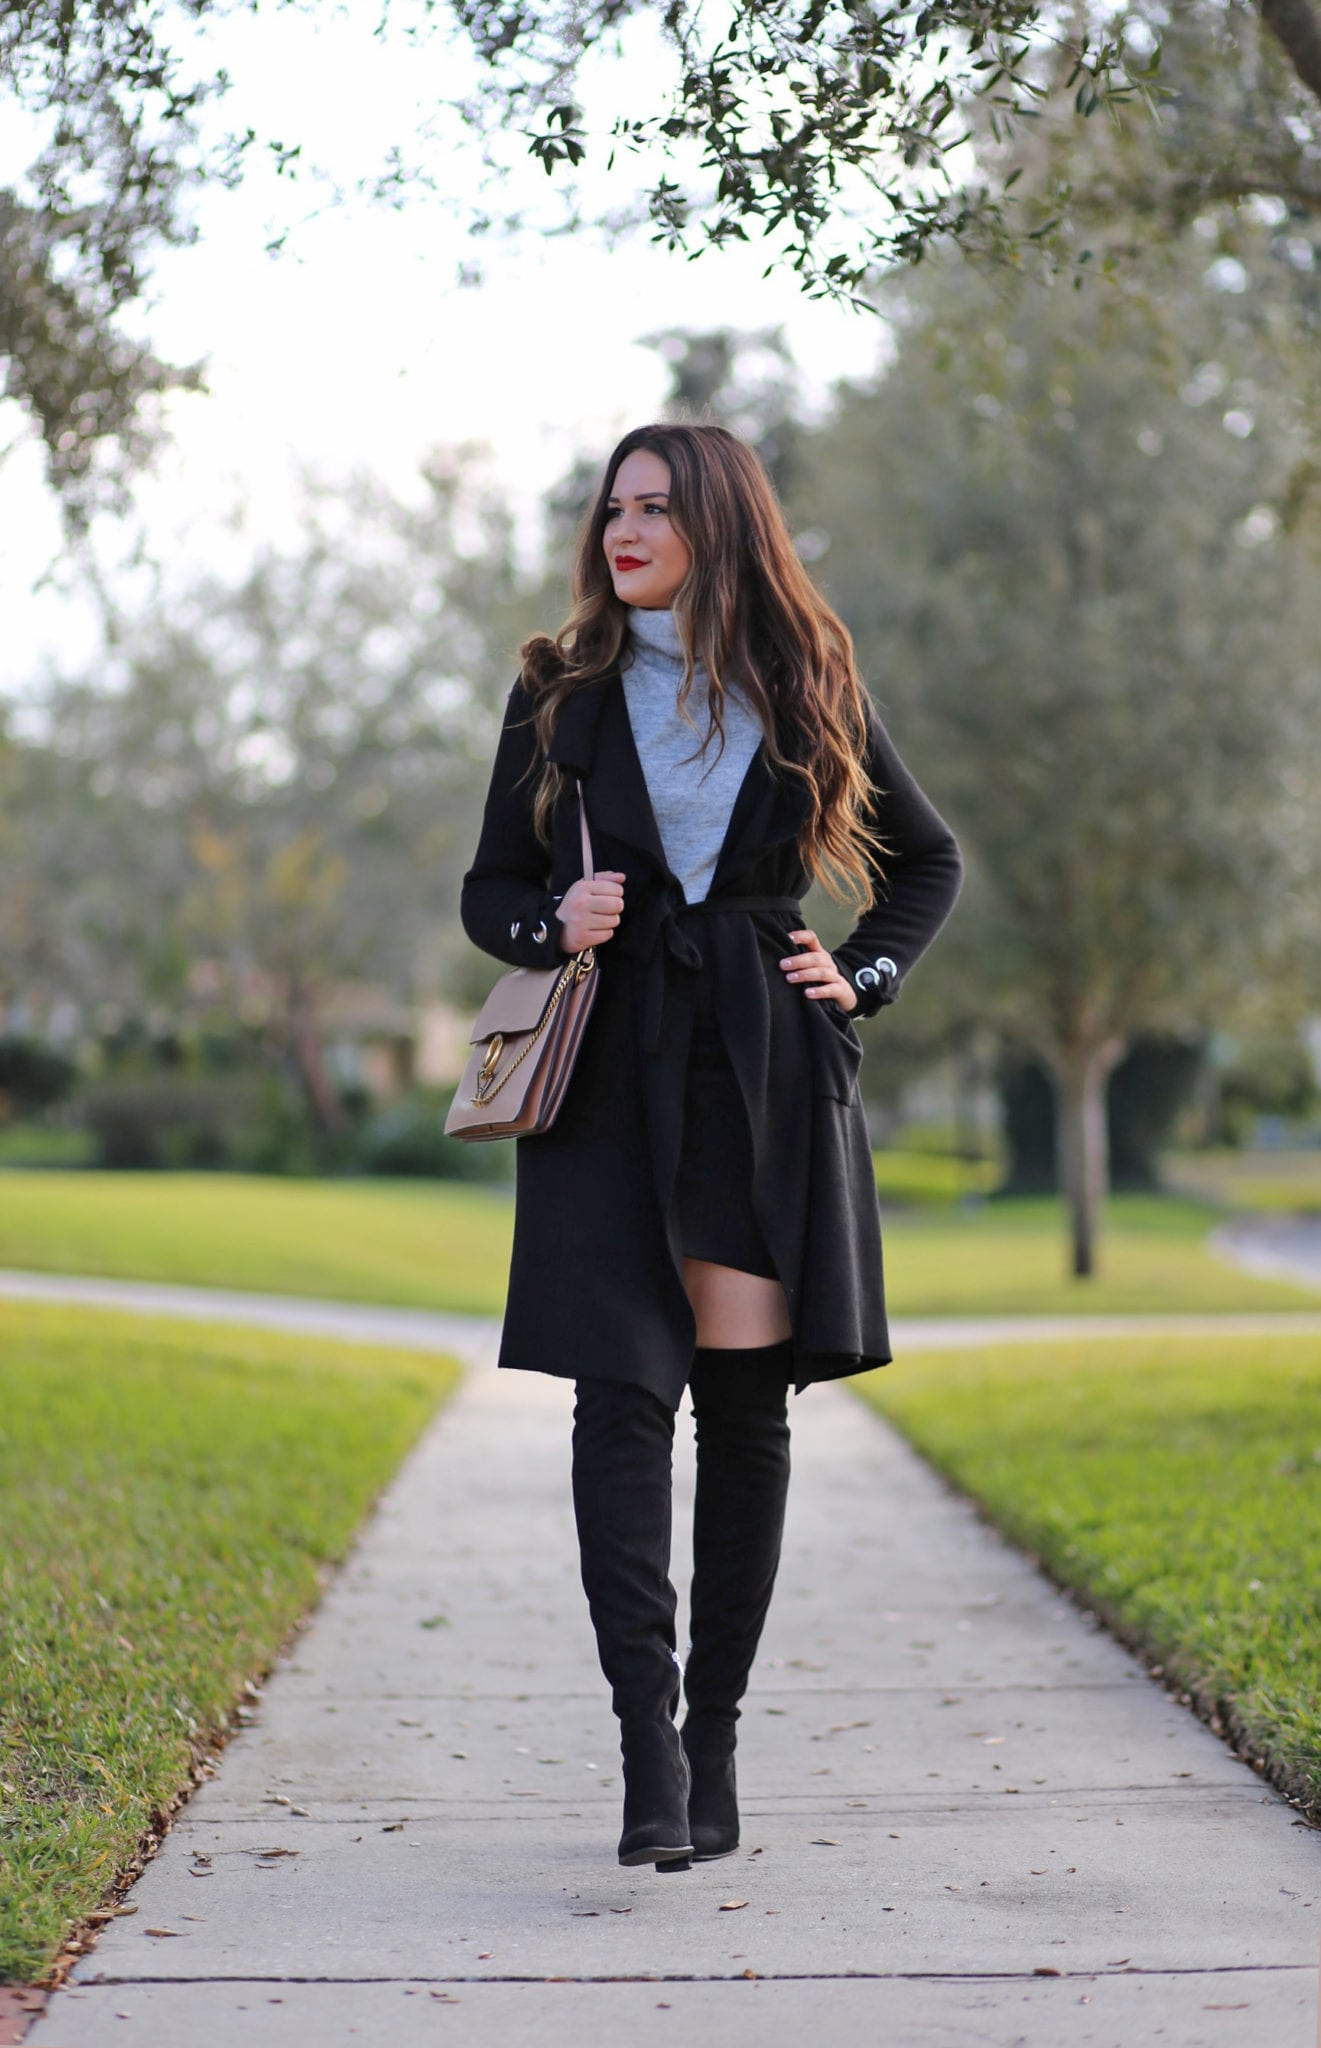 Dynamite holiday outfit idea beauty blogger Mash Elle cold or warm weather otk boots coats skirt black outfit winter fashion